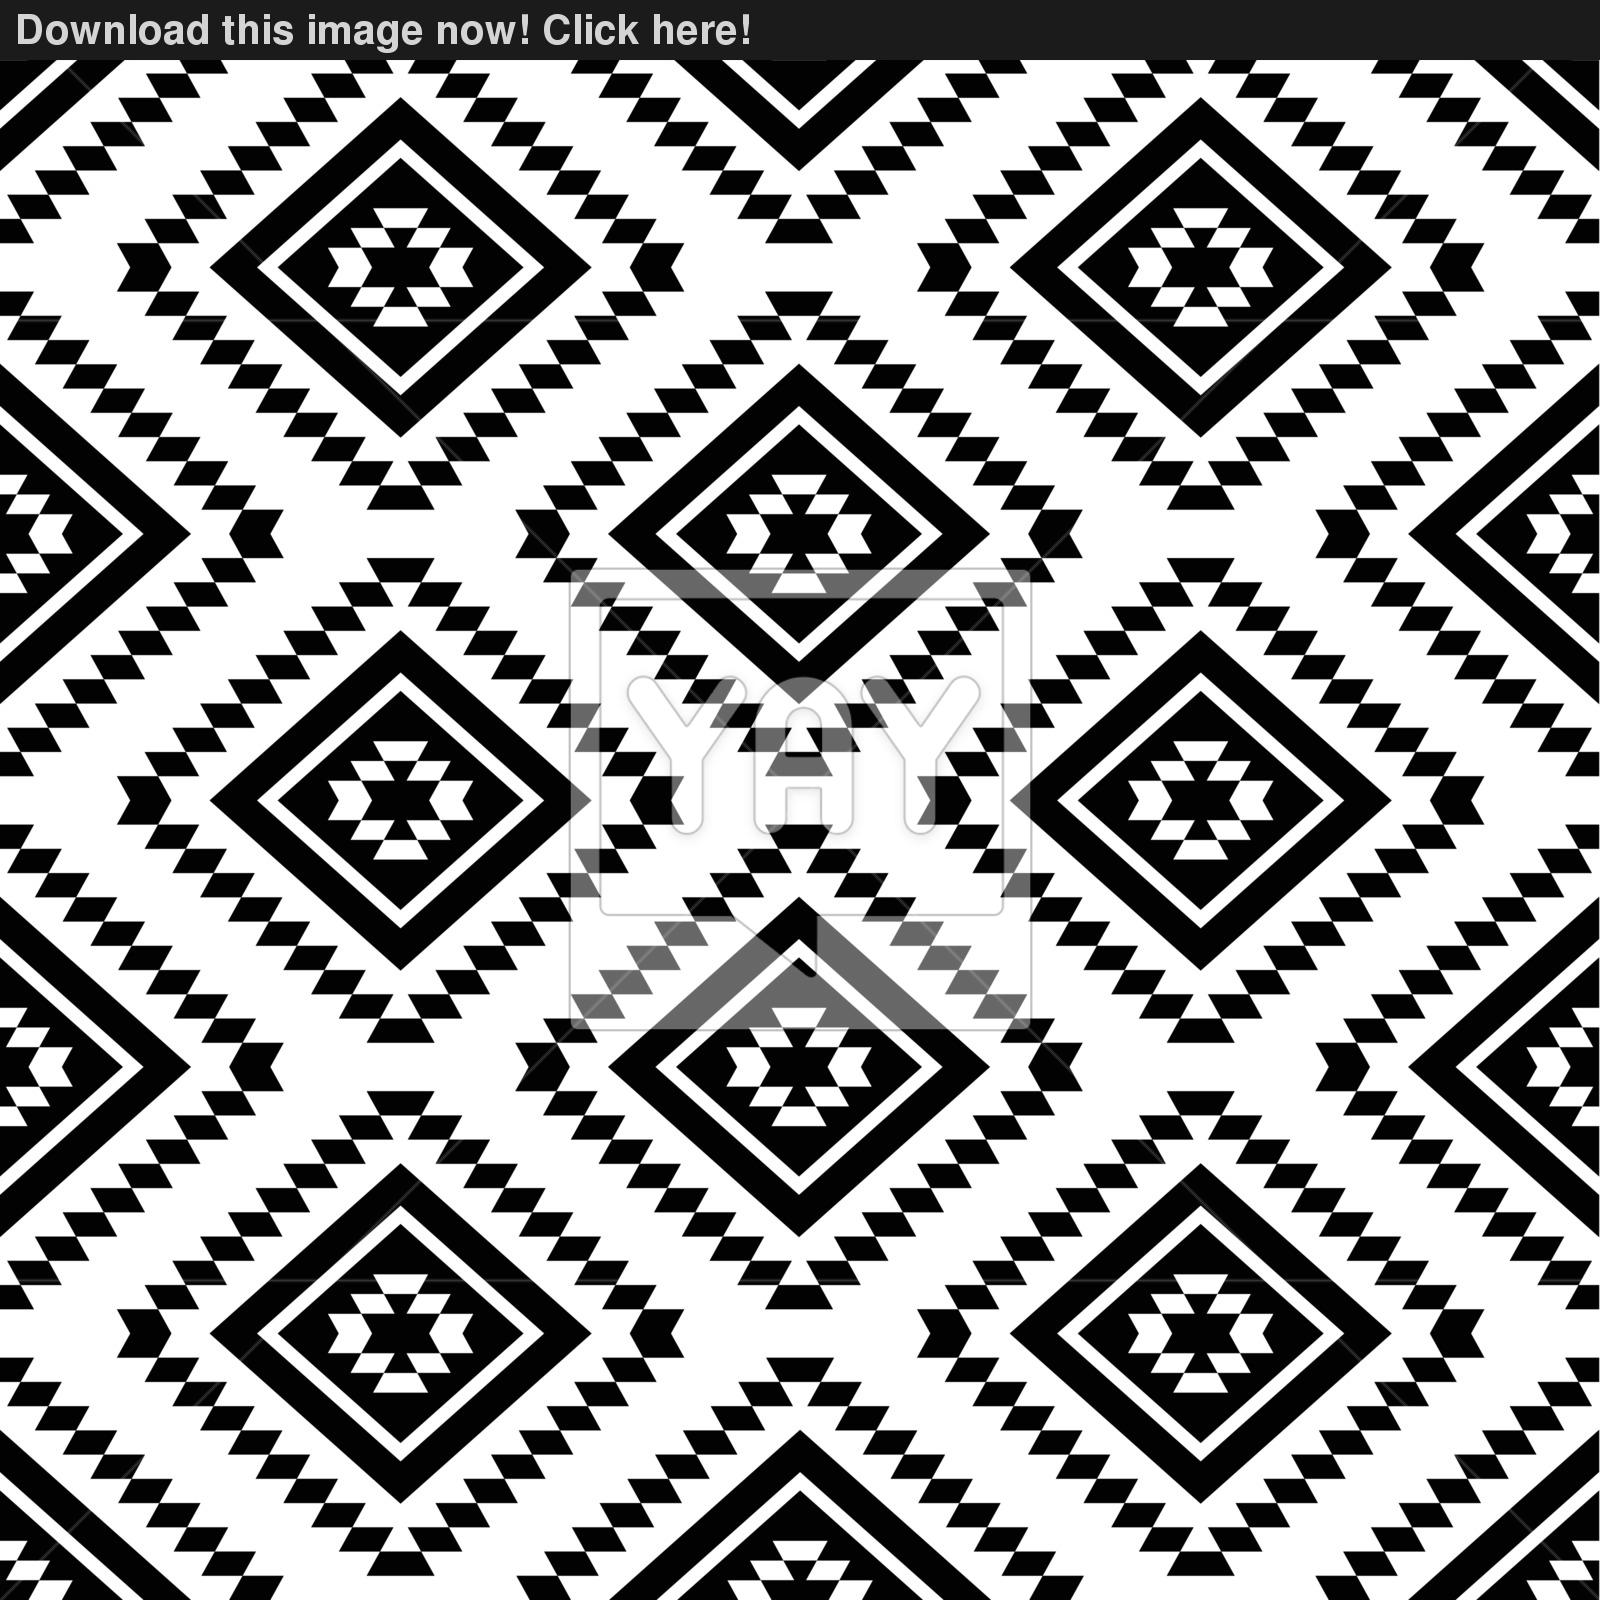 Aztec Wallpaper Black And White 1600x1600